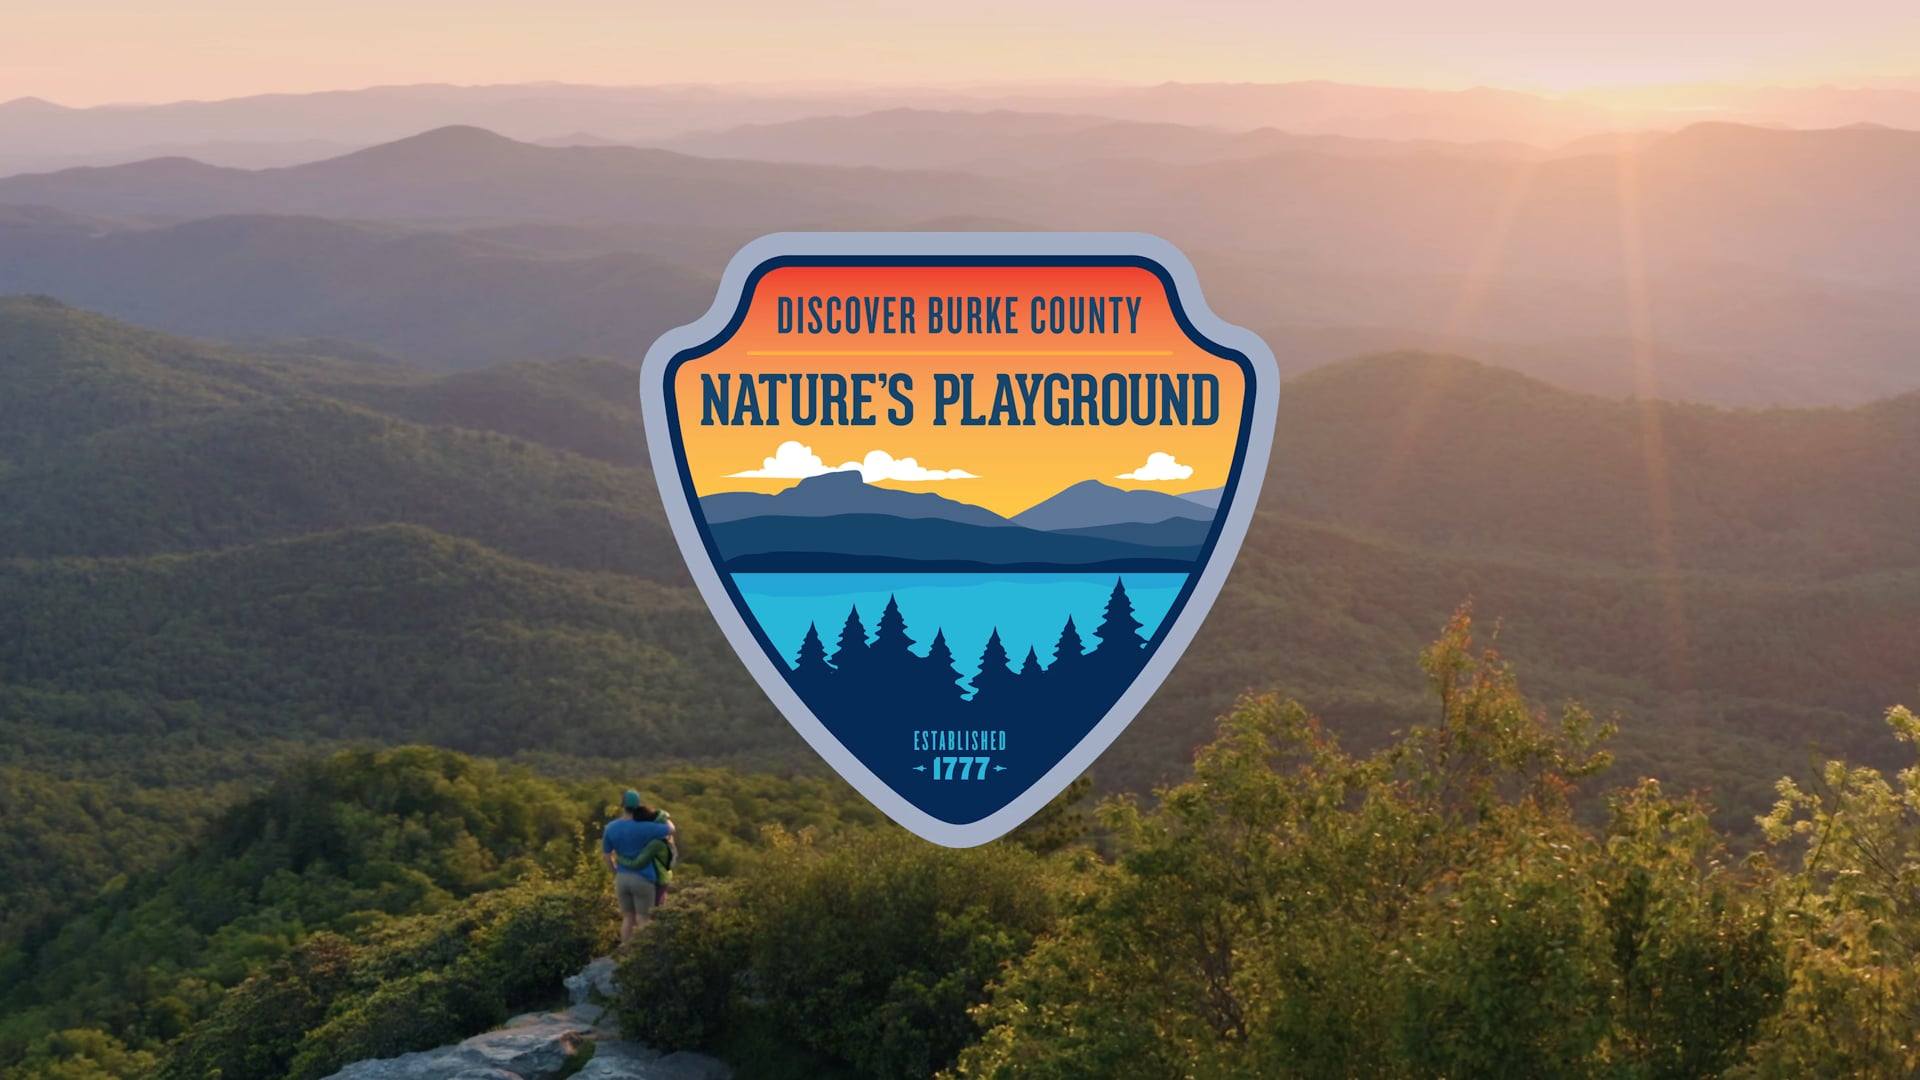 Discover Burke County - Nature's Playground